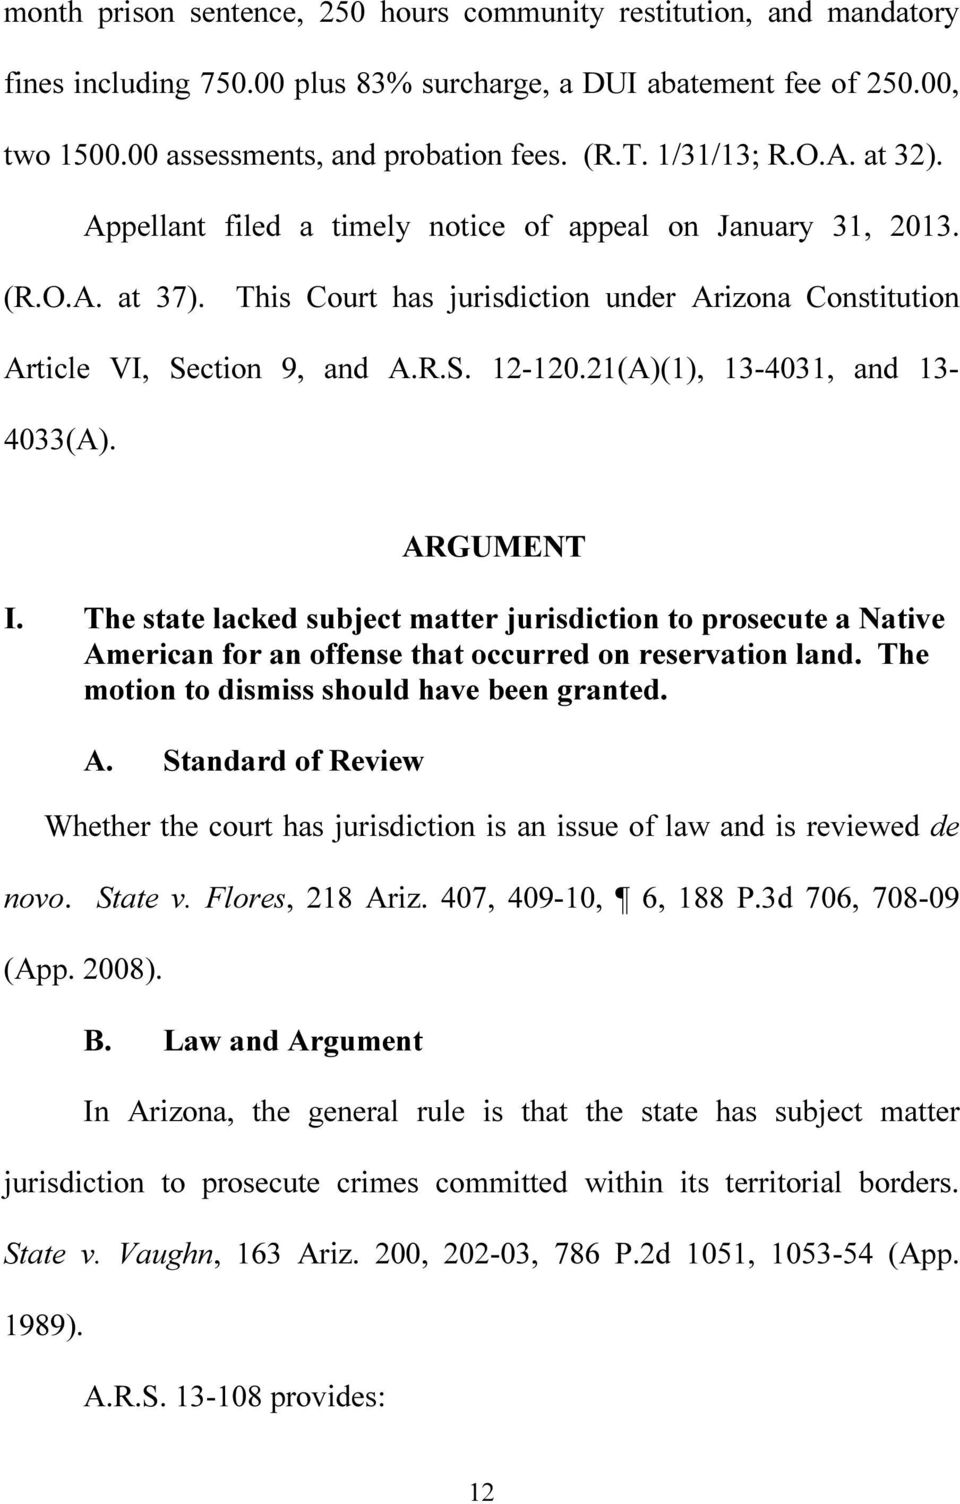 21(A)(1), 13-4031, and 13-4033(A). ARGUMENT I. The state lacked subject matter jurisdiction to prosecute a Native American for an offense that occurred on reservation land.